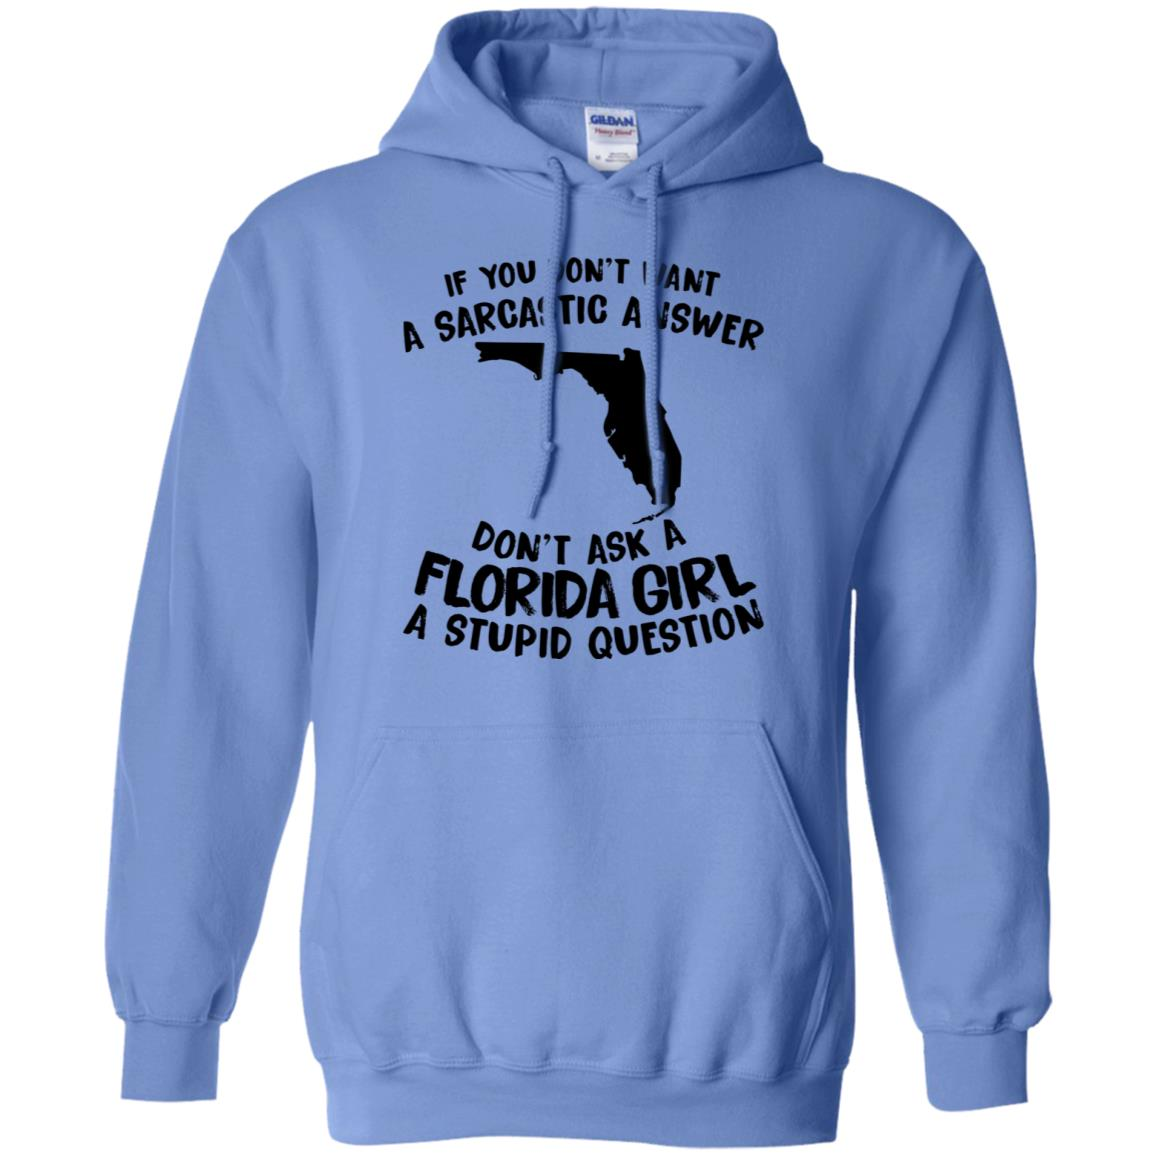 Don't Ask A Florida Girl A Stupid Question Hoodie